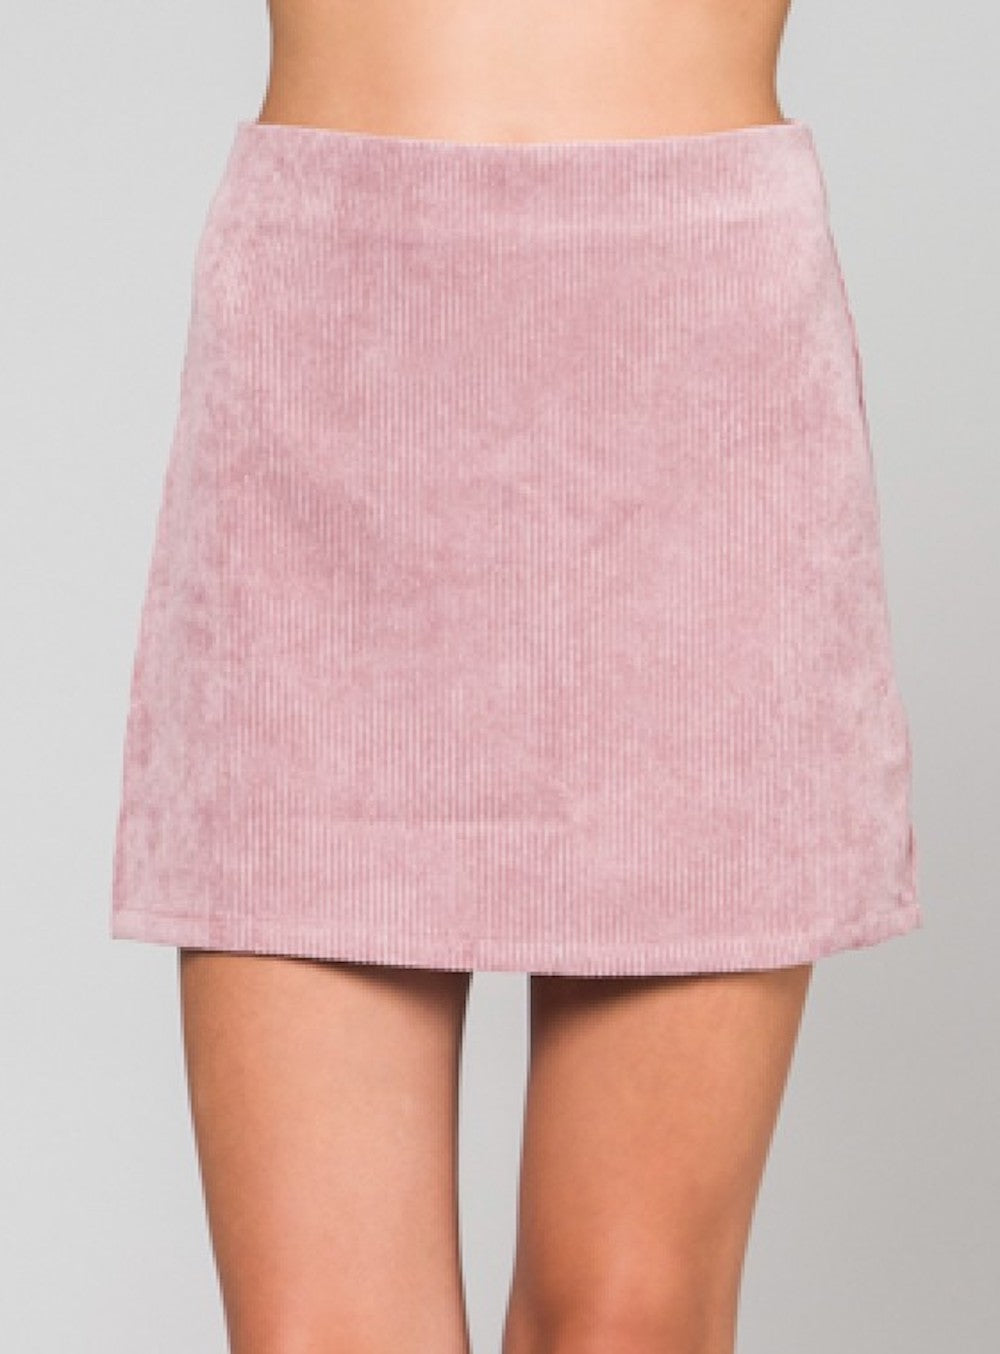 Wild Honey Corduroy Mini Skirt